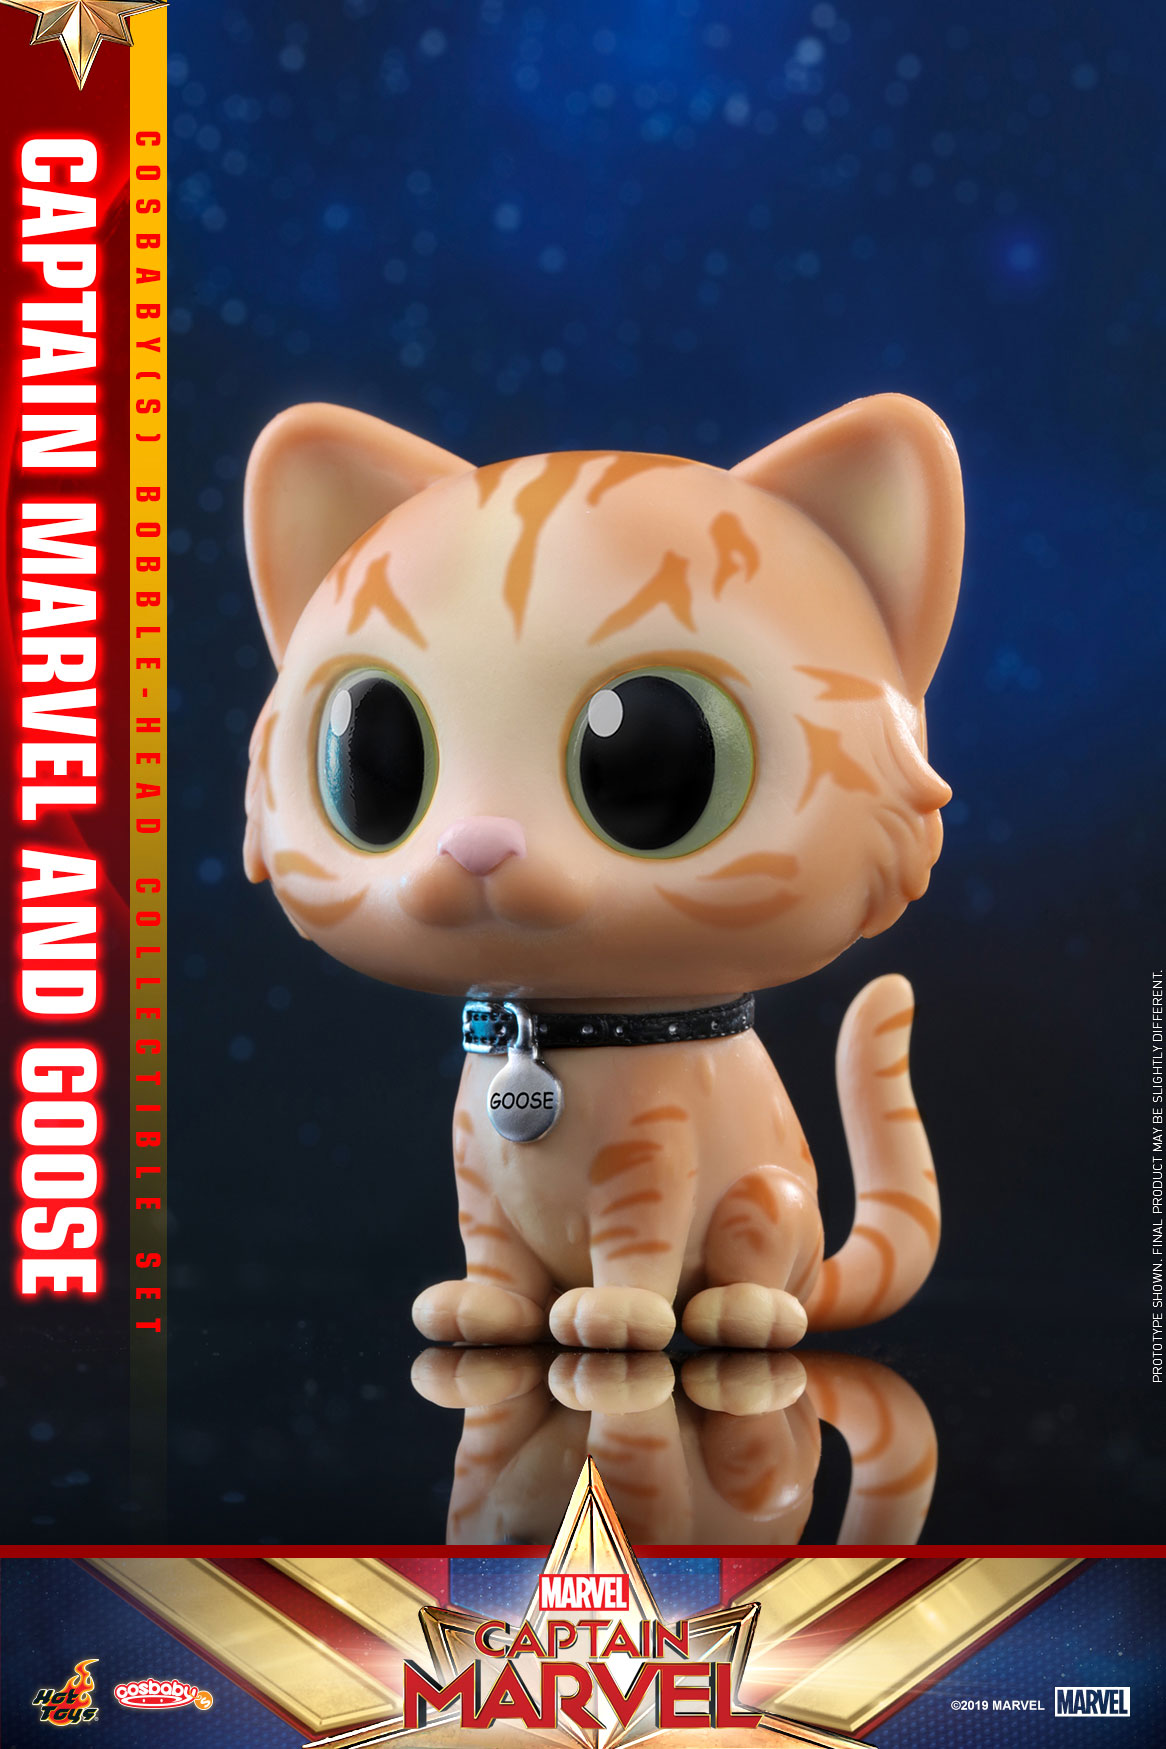 Hot-Toys---Captain-Marvel---Captain-Marvel-and-Goose-Cosbaby-Bobble-head-Collectible-Set-(S)_PR3